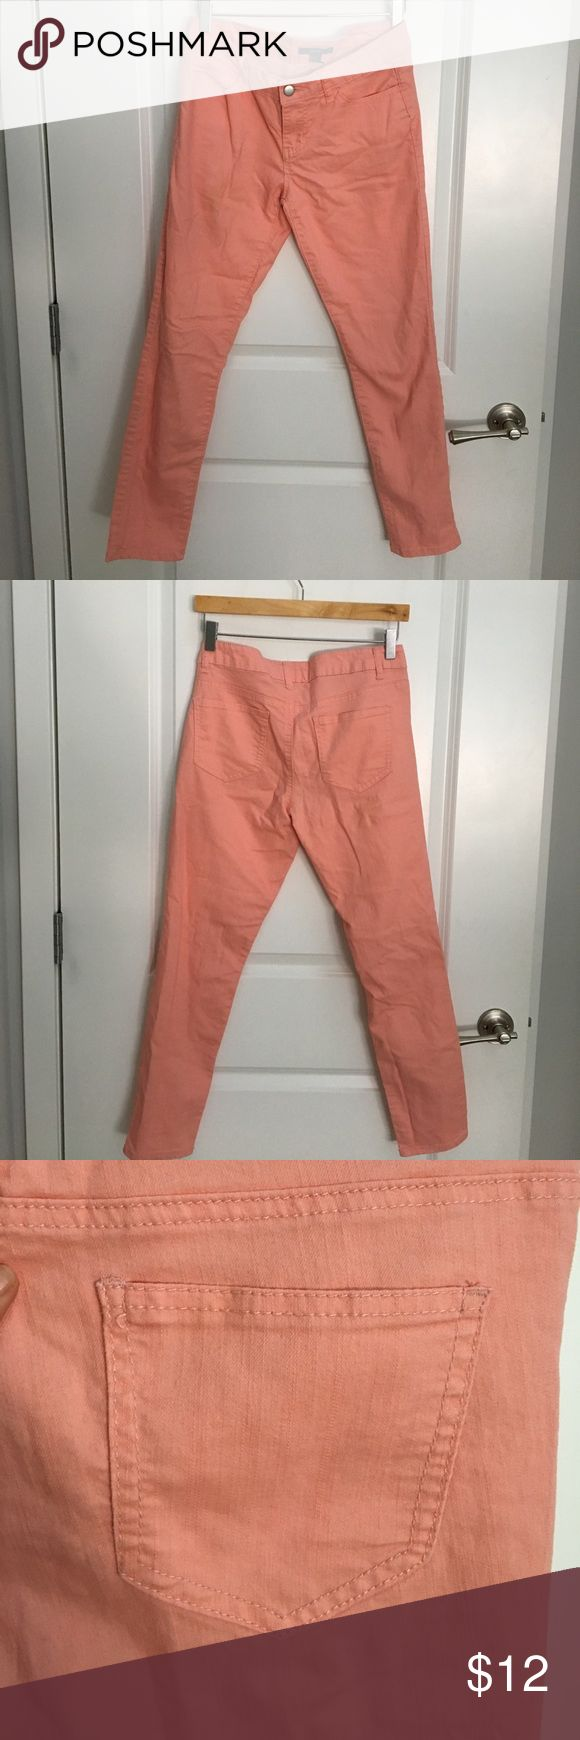 Coral skinny jeans Coral skinny jeans originally from forever 21. Smoke free home. In good shape. Forever 21 Jeans Skinny